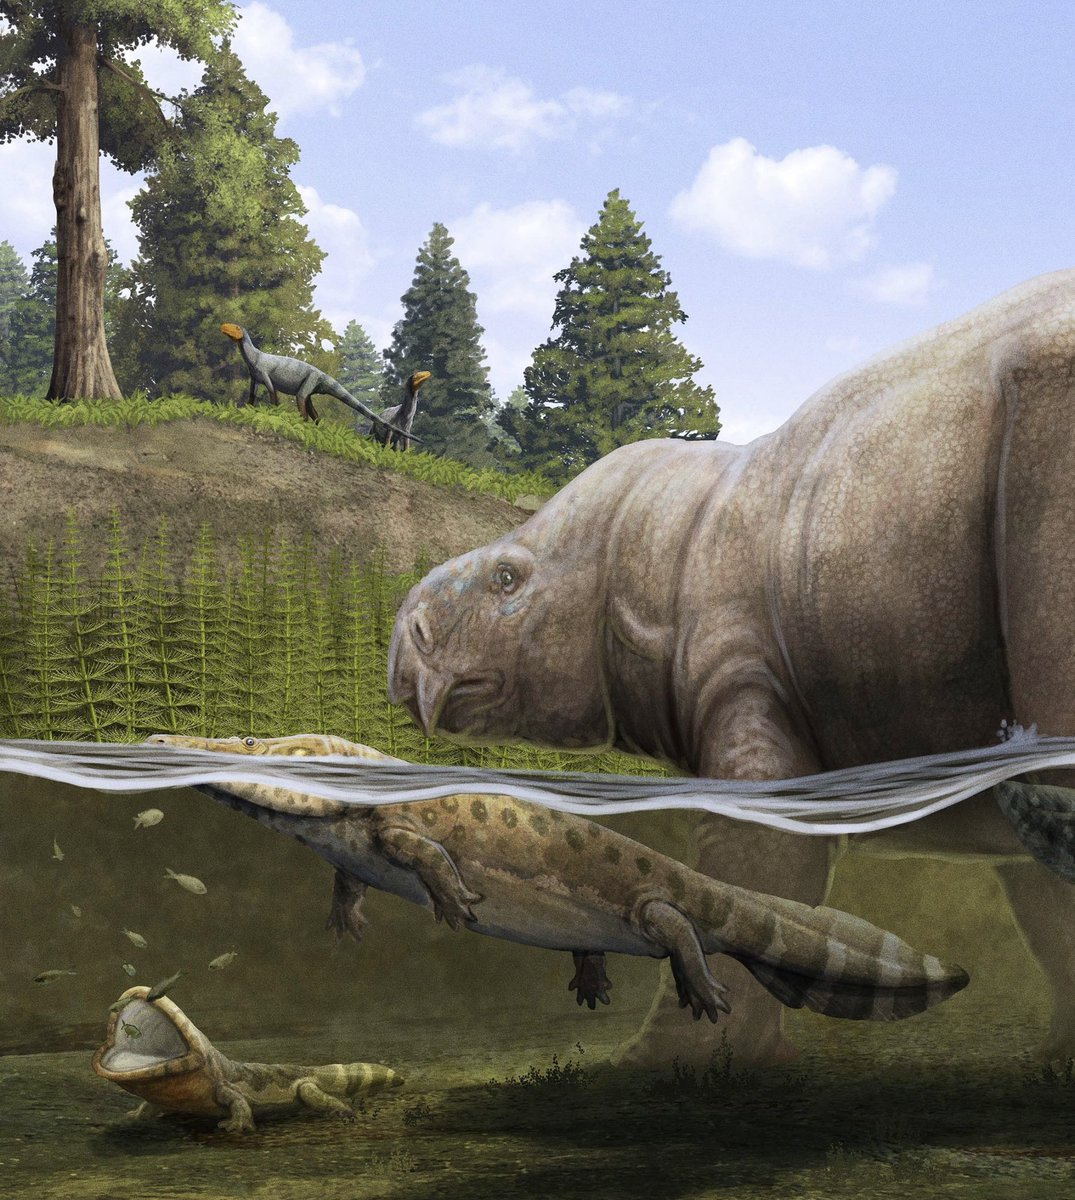 Other animals preyed on the smaller fish, like the lungfish and temnospondyls shown here. The large temnospondyl is a capitosauroid. The smaller Plagiosaurid Temnospondyl on the left, is sitting right there with its mouth open waiting for some fish to swim just in range.